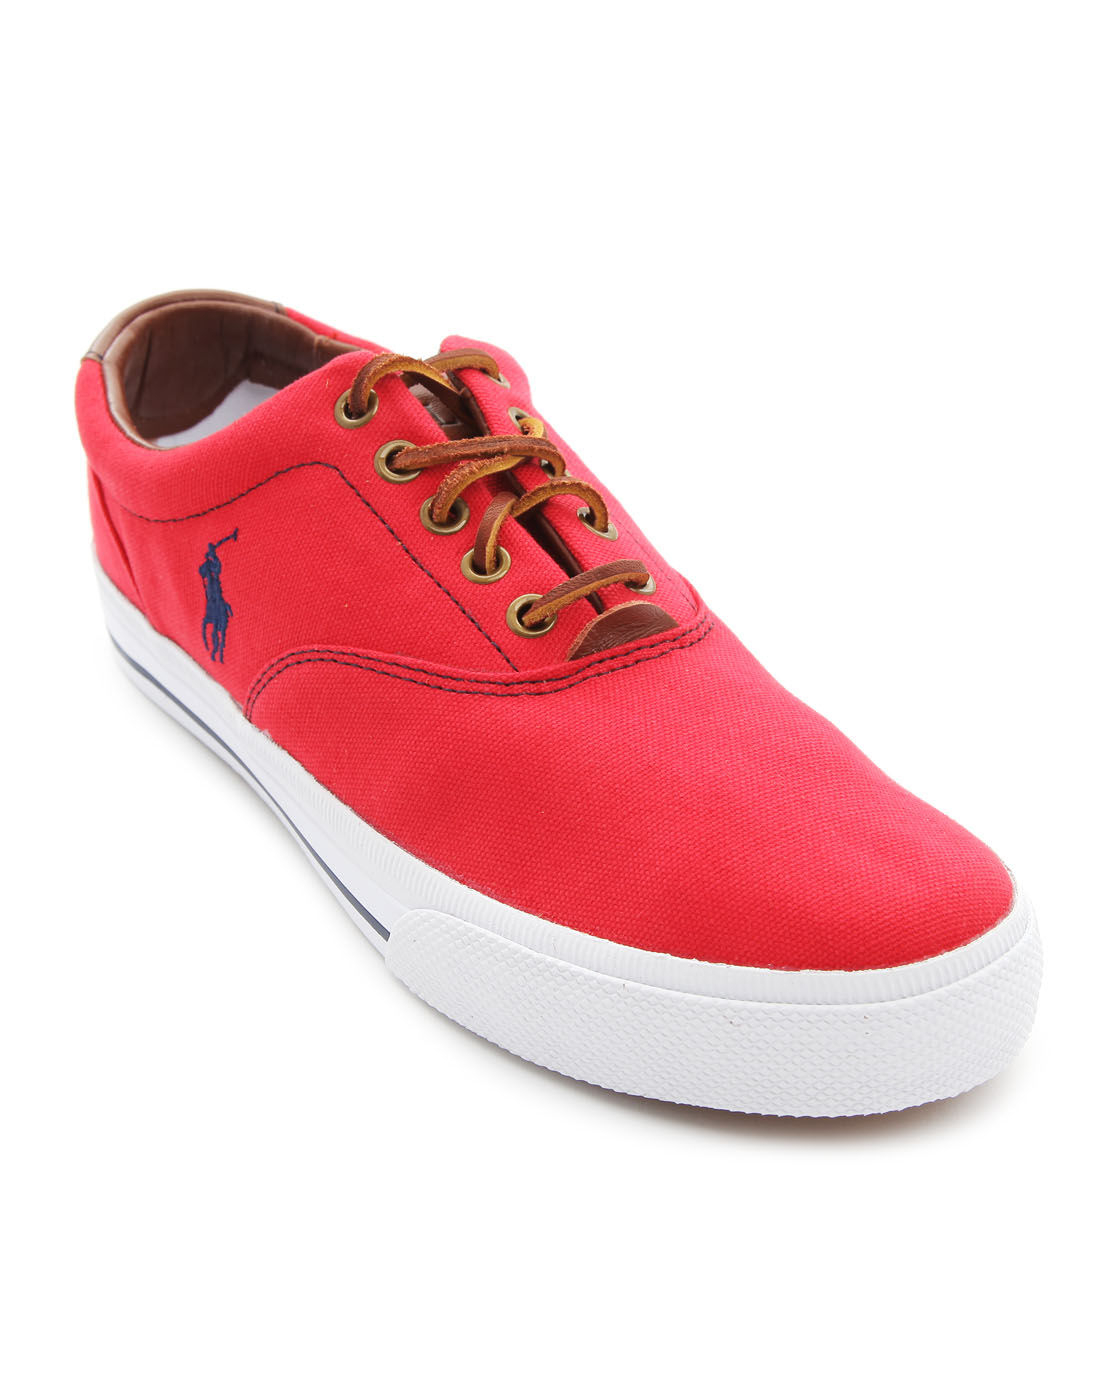 Free shipping BOTH ways on mens red canvas shoes, from our vast selection of styles. Fast delivery, and 24/7/ real-person service with a smile. Click or call